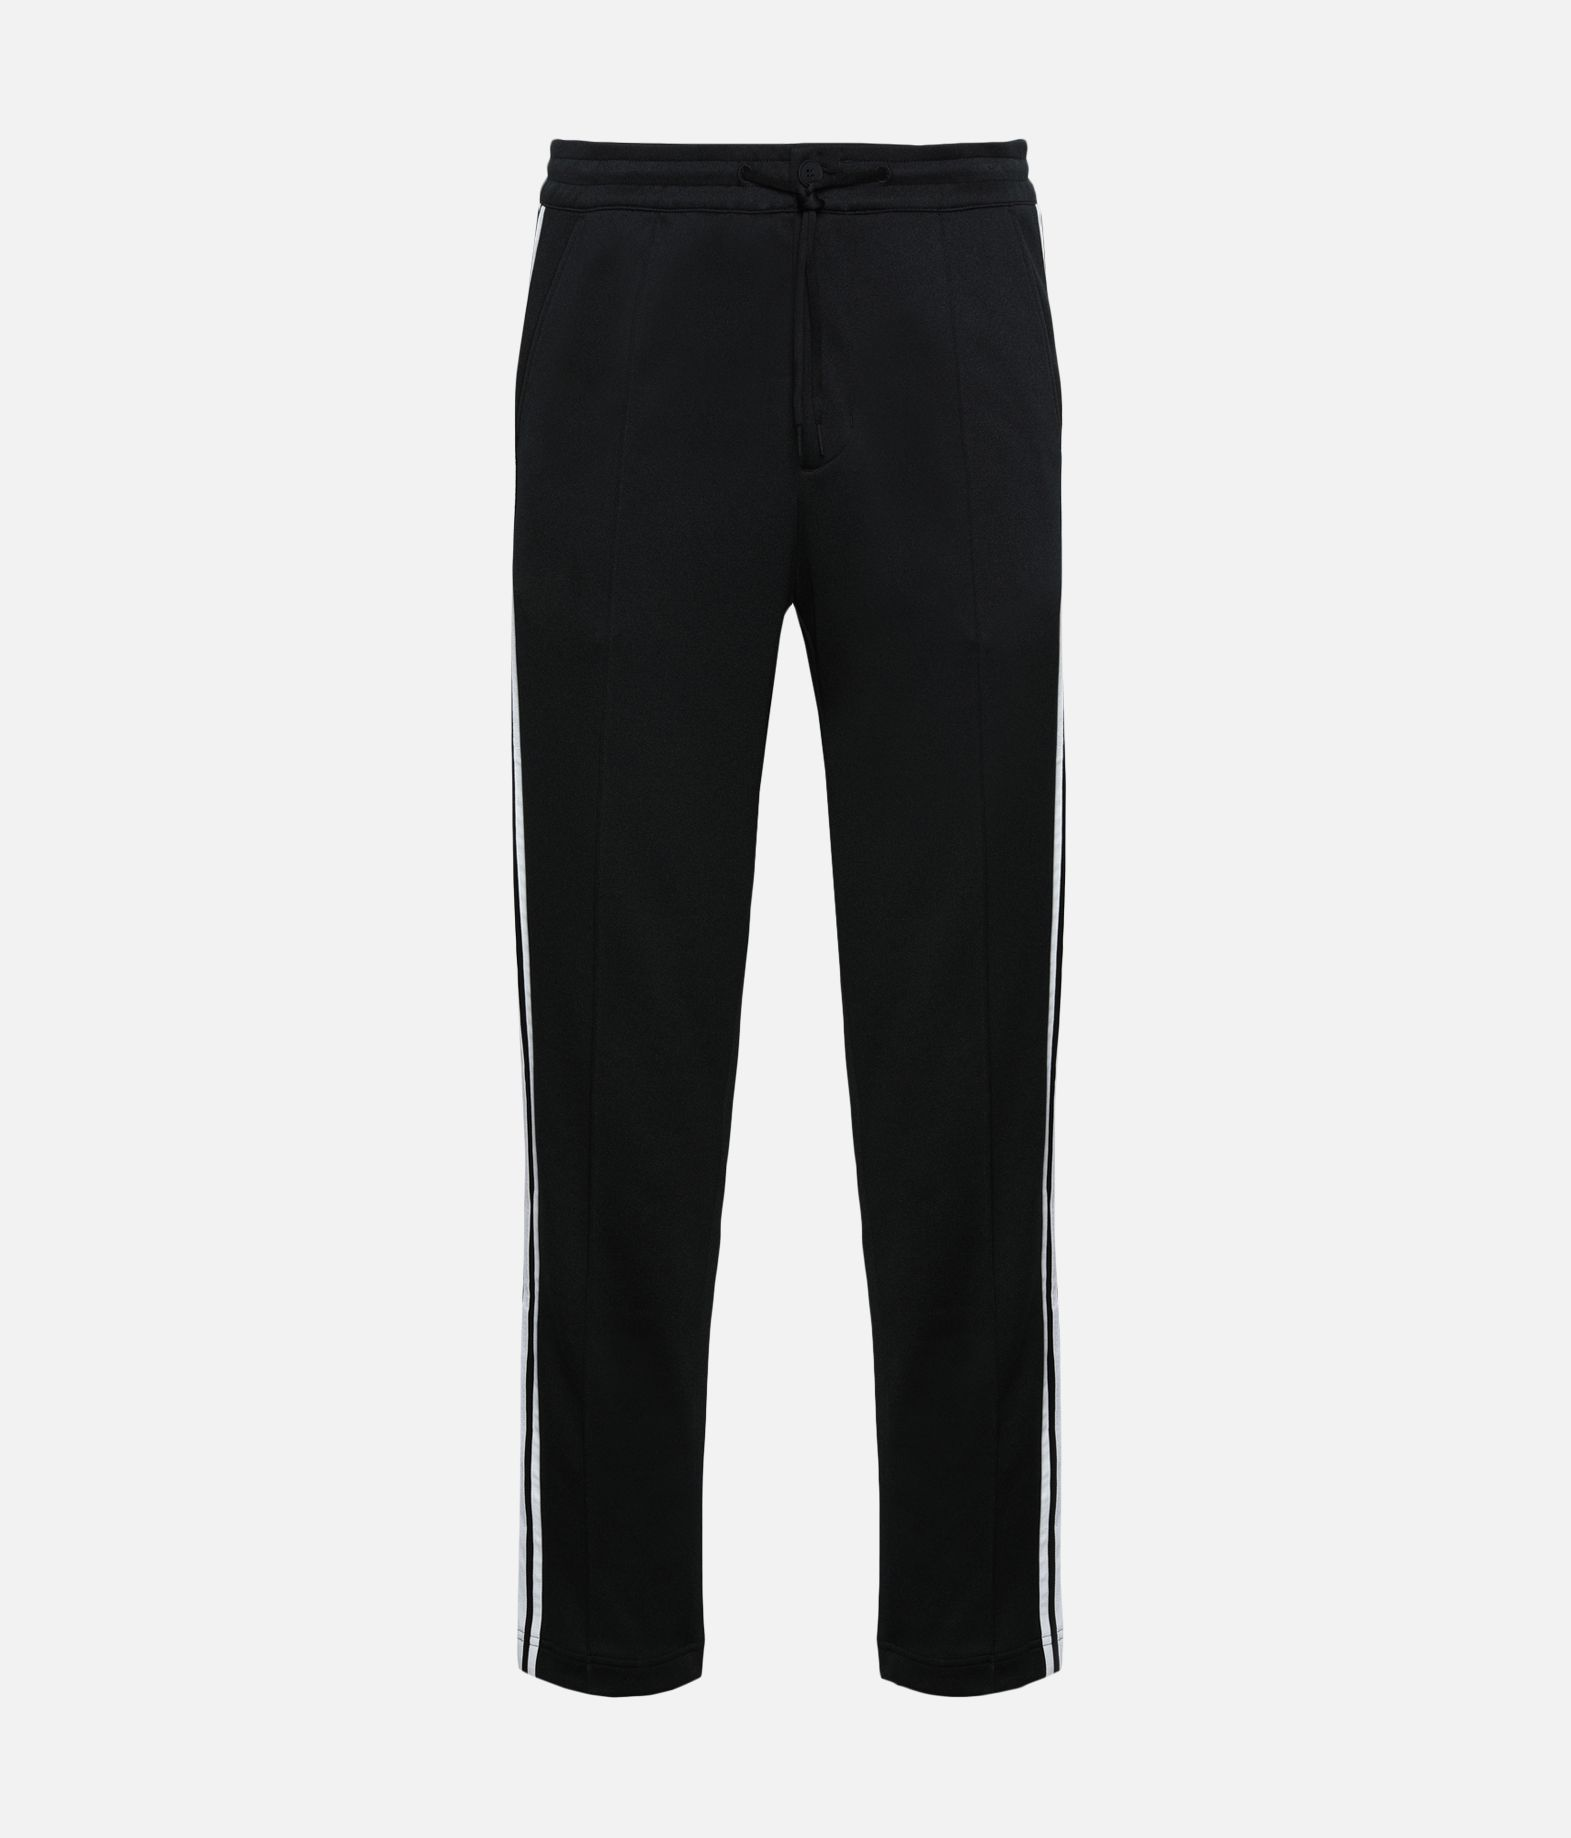 Y-3 Y-3 3-Stripes Track Pants Tracksuit bottoms Man f